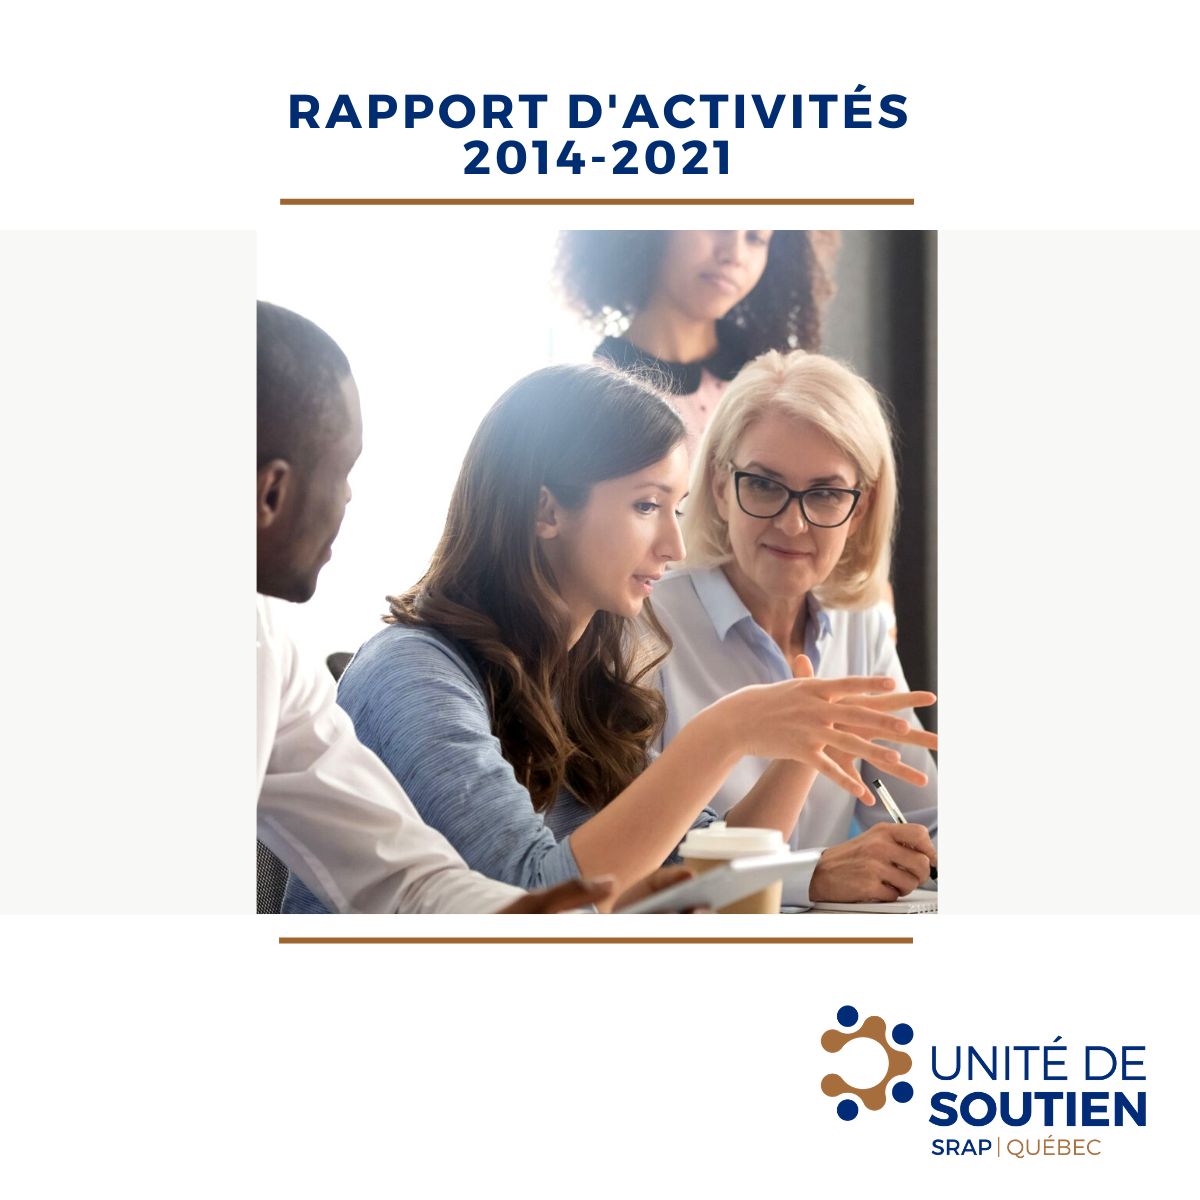 image_rapports_activites_carre